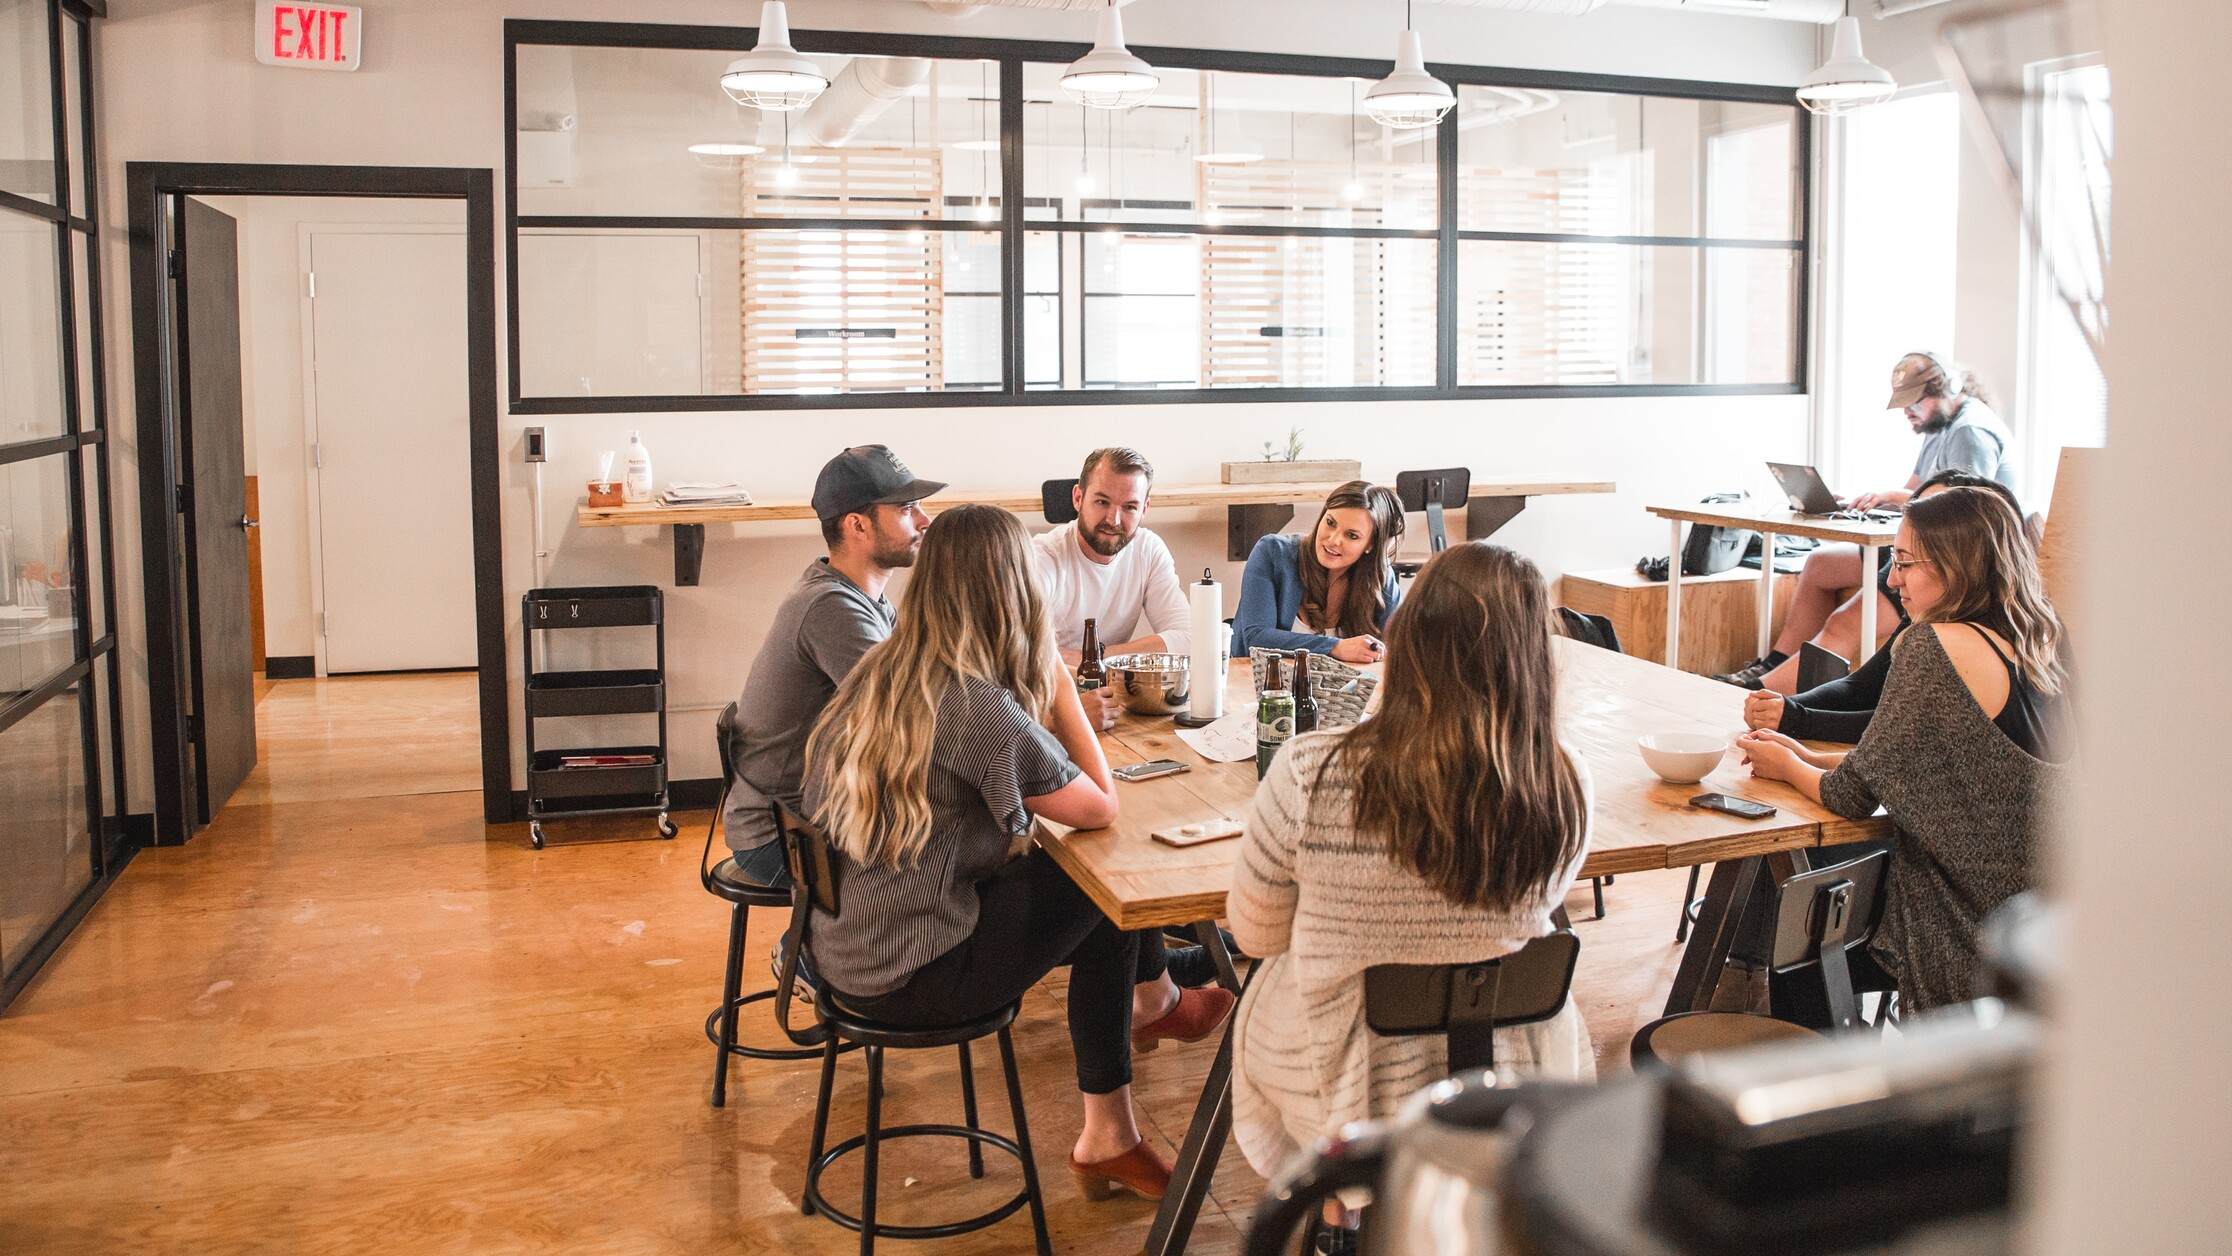 Best Practices to Prepare for Productive Client Meetings